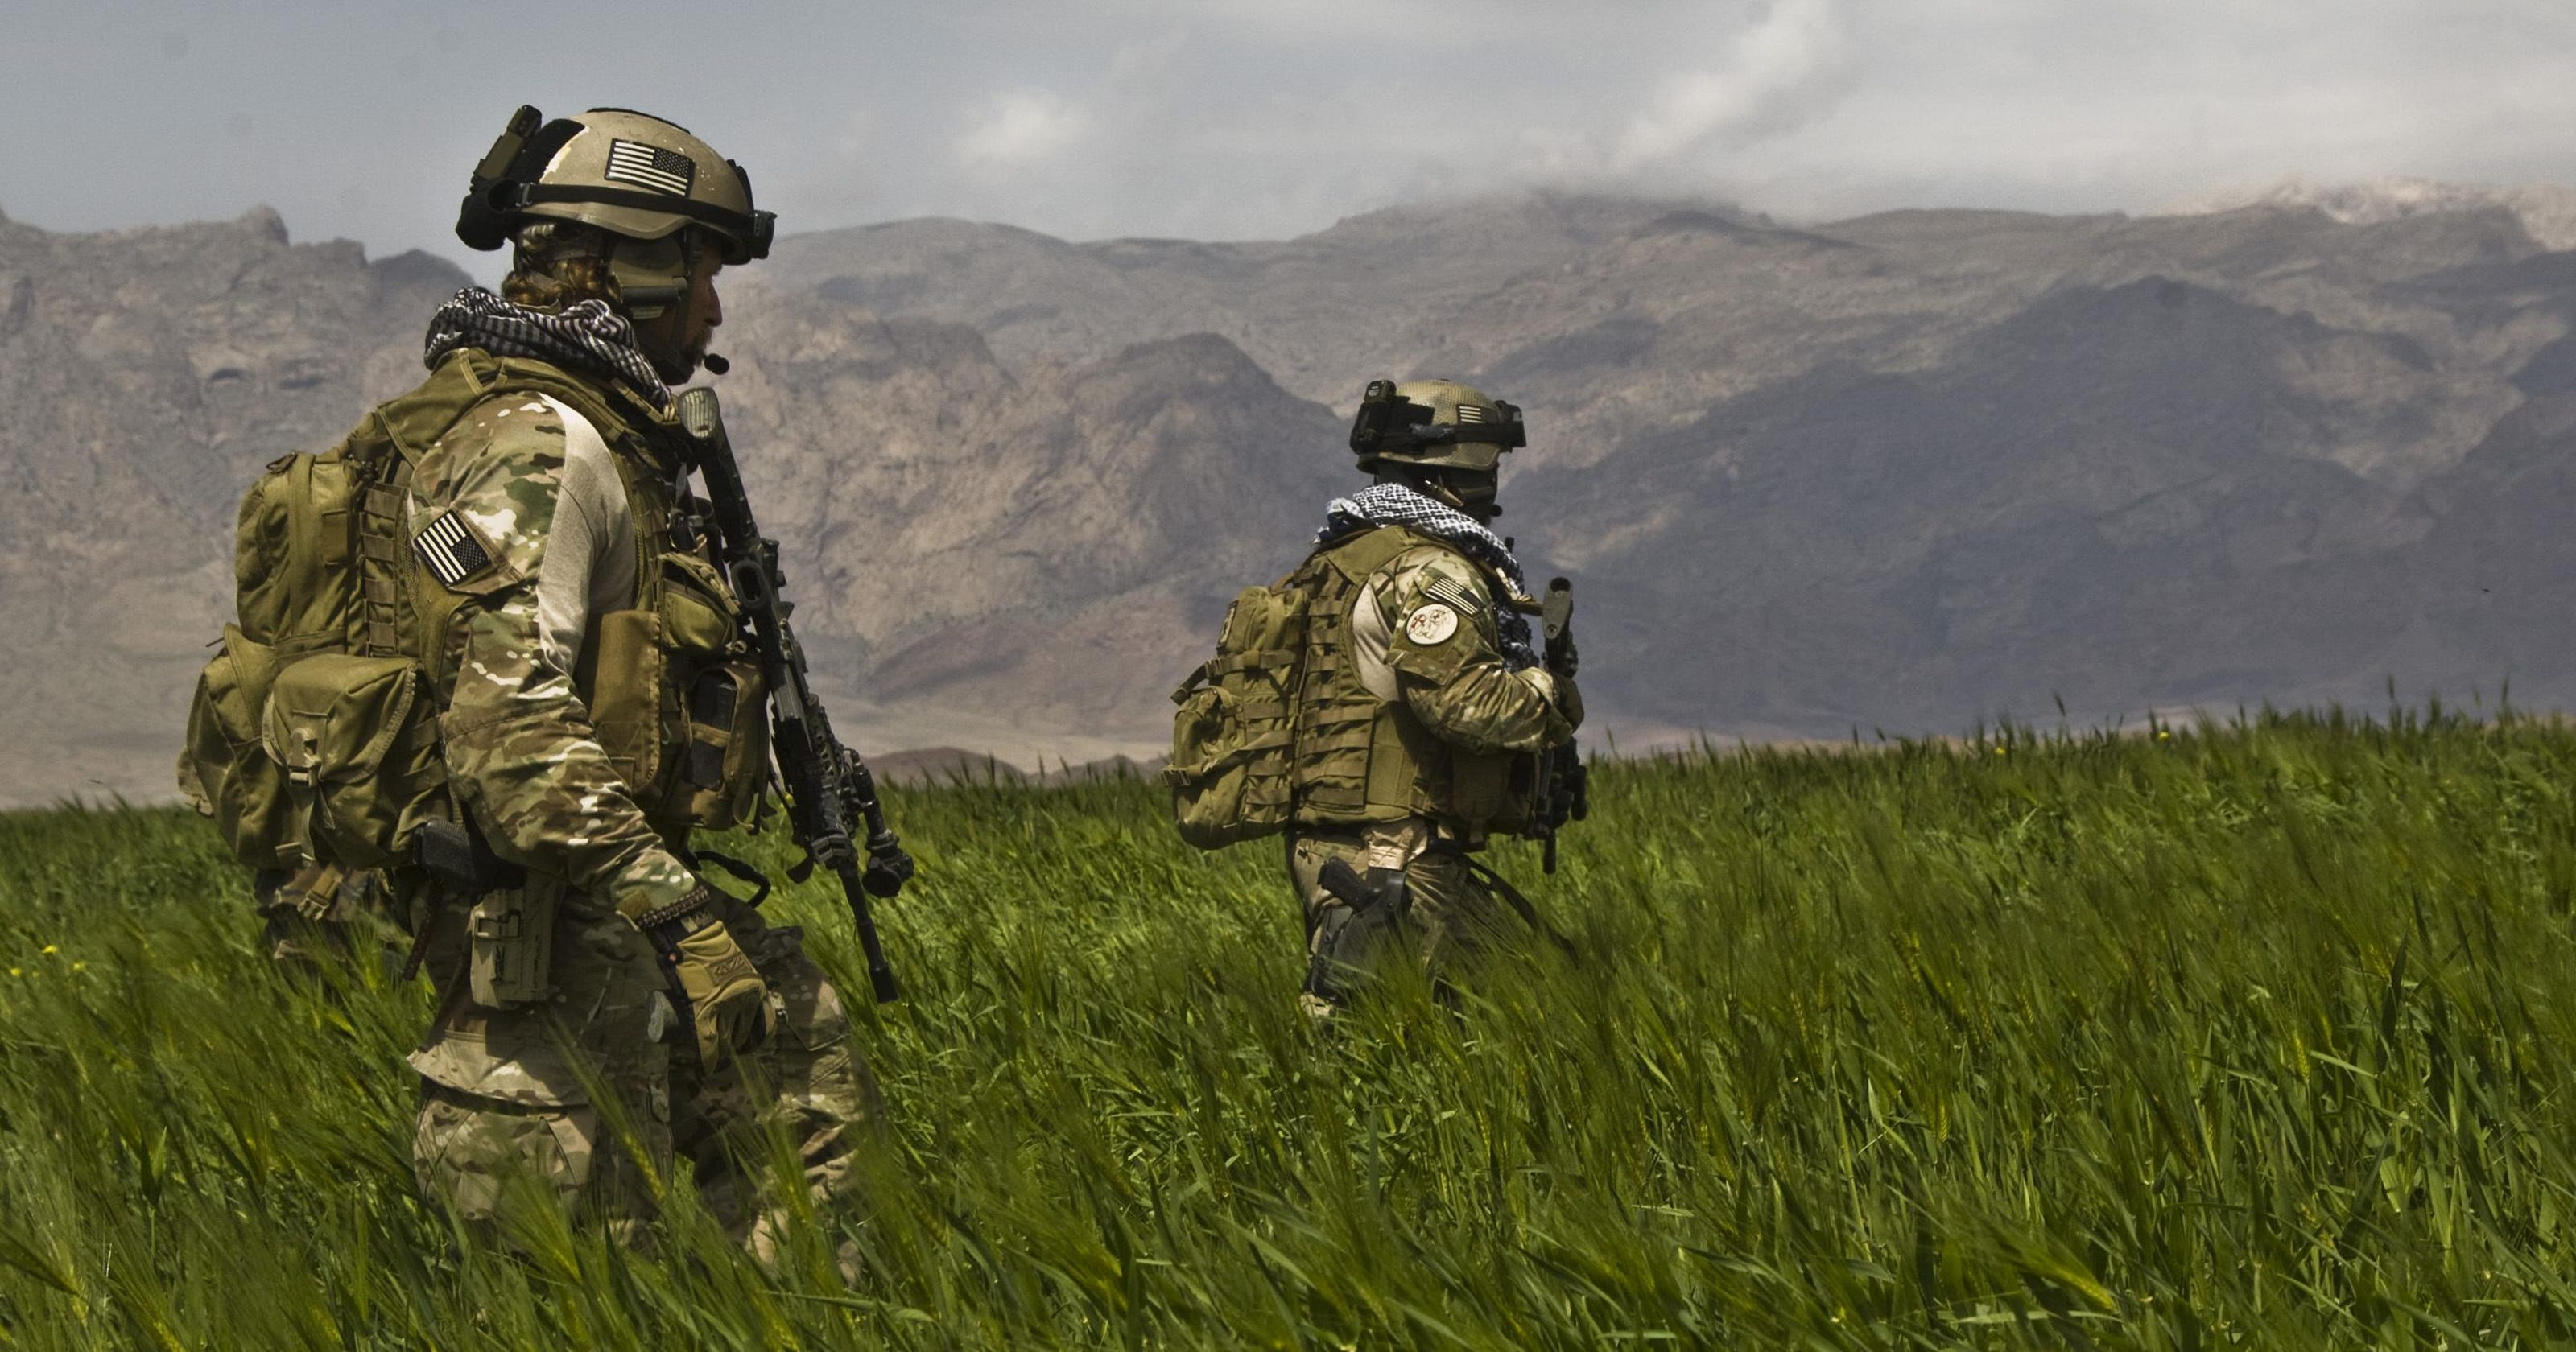 OPINION: As military declines, so does American prestige